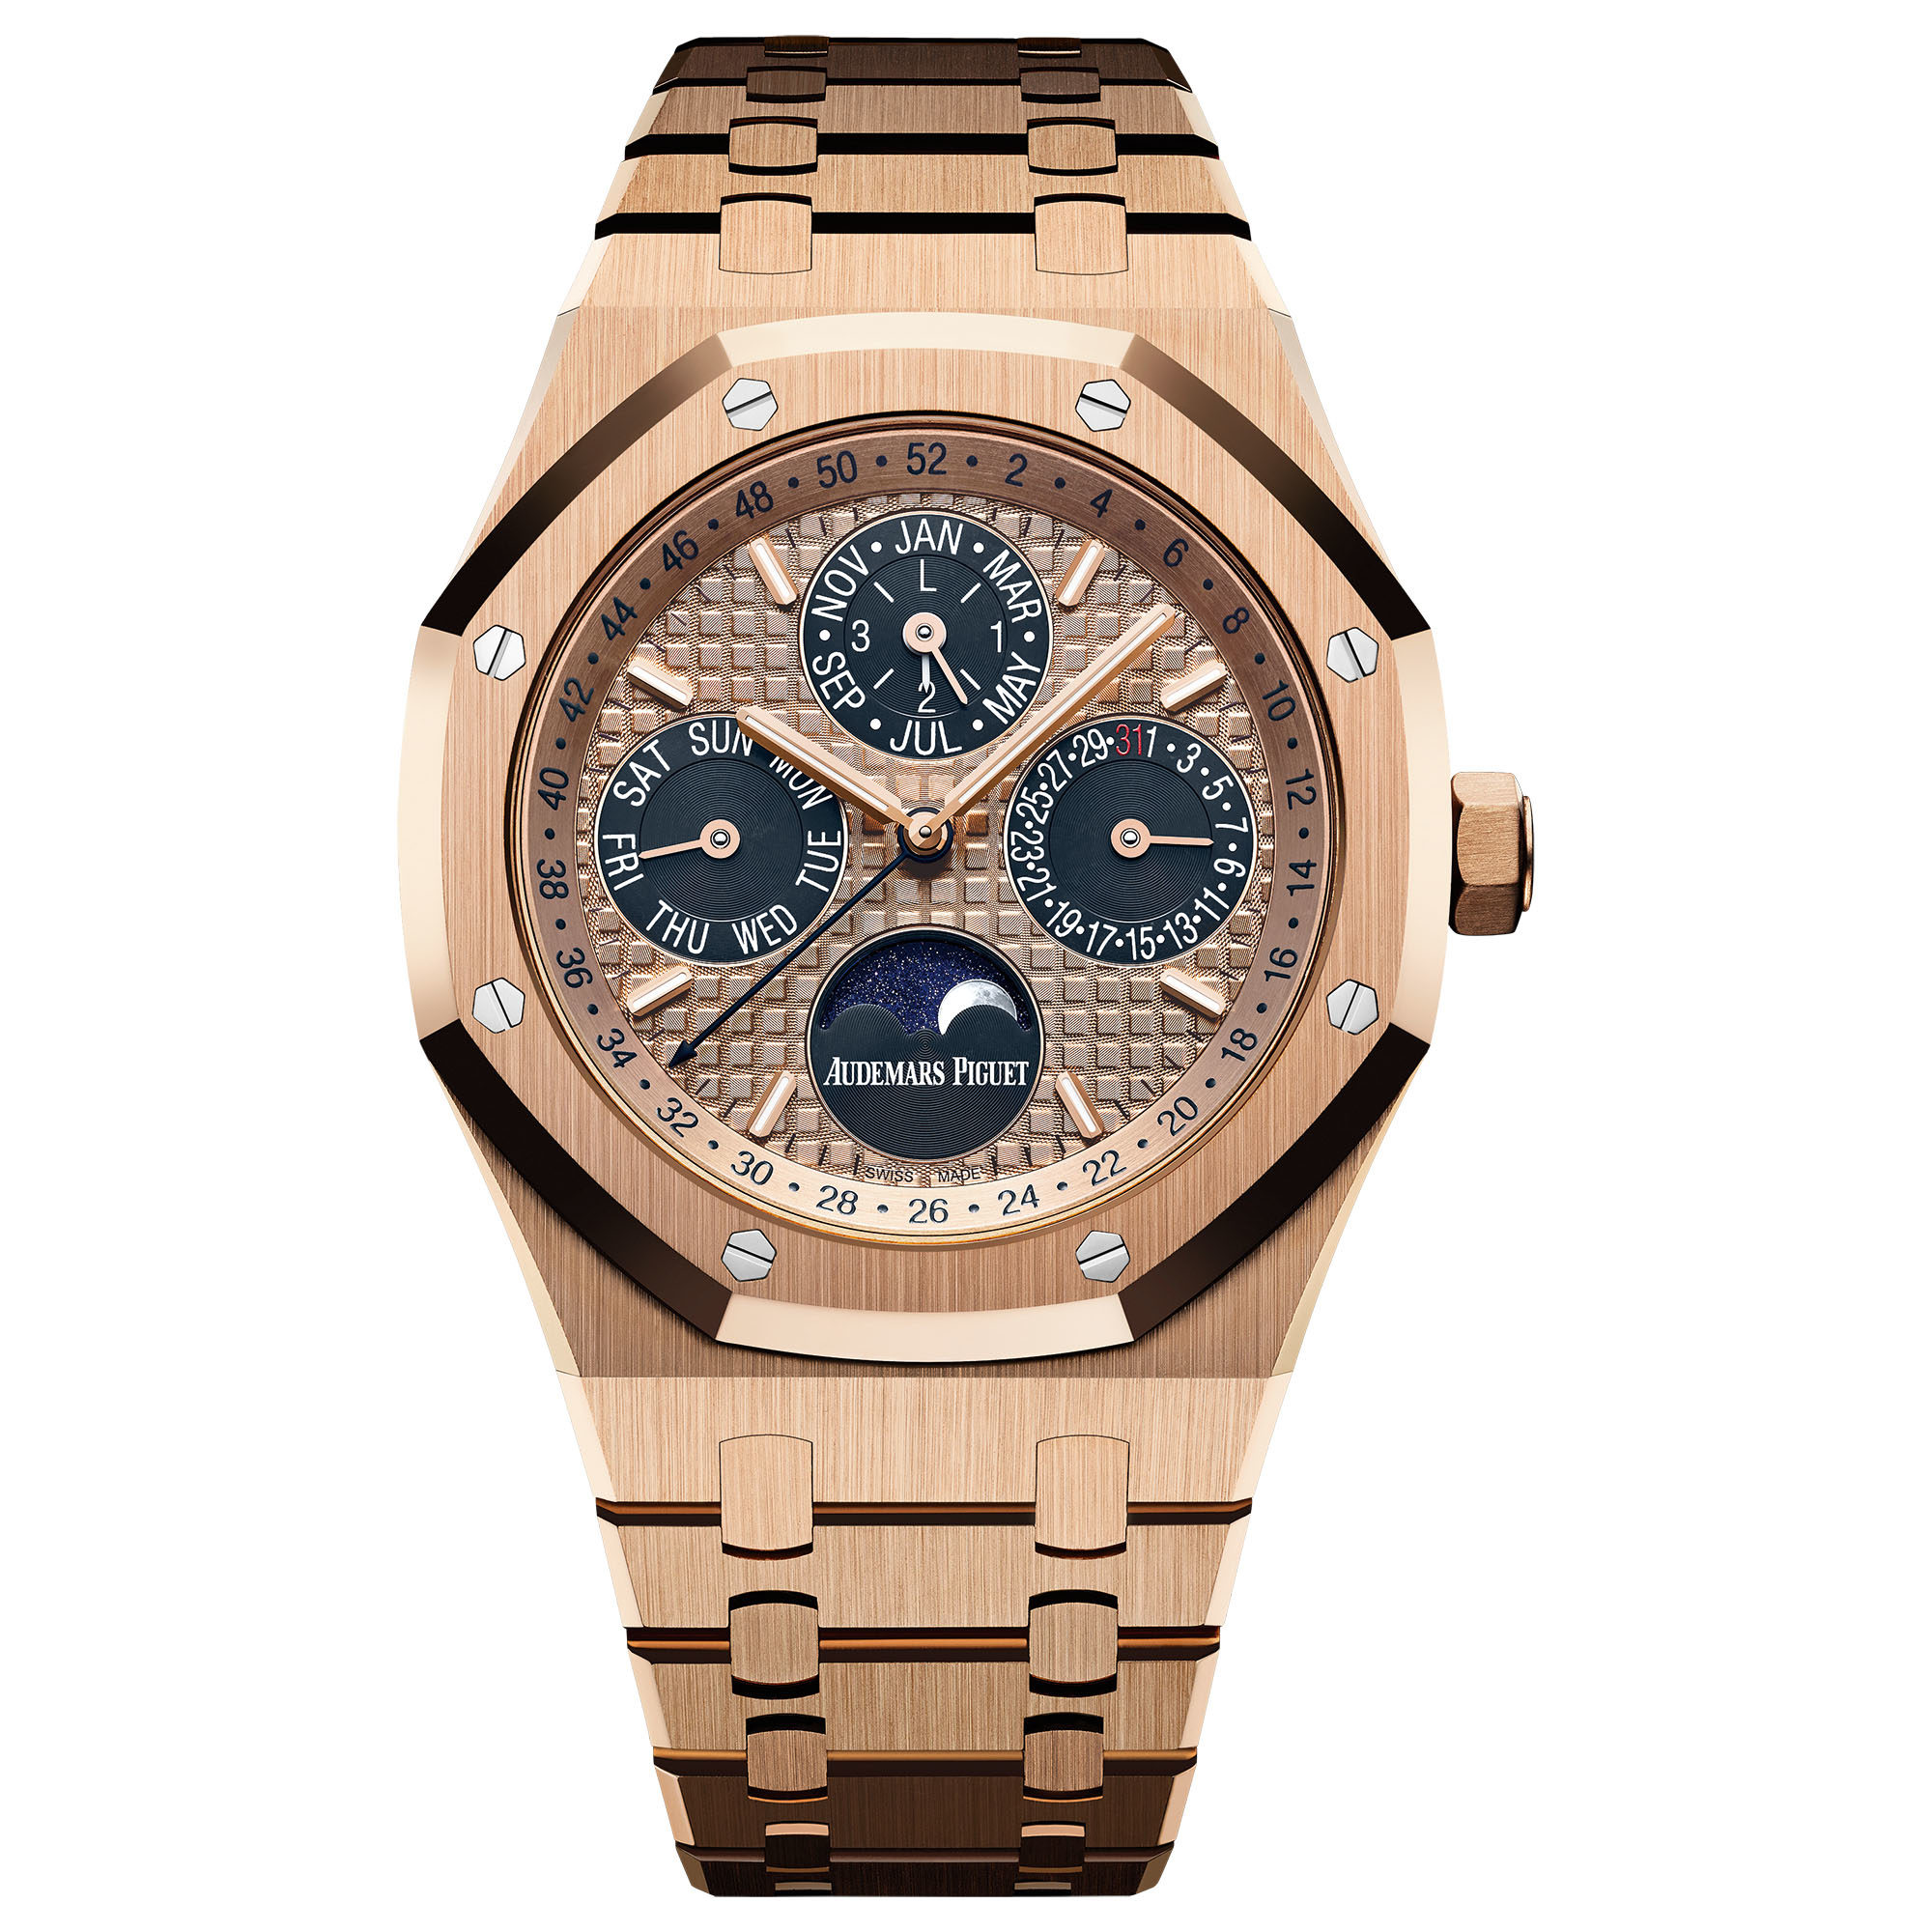 Buy Luxury Replica Audemars Piguet Royal Oak Perpetual Calendar 26584OR.OO.1220OR.01 watch